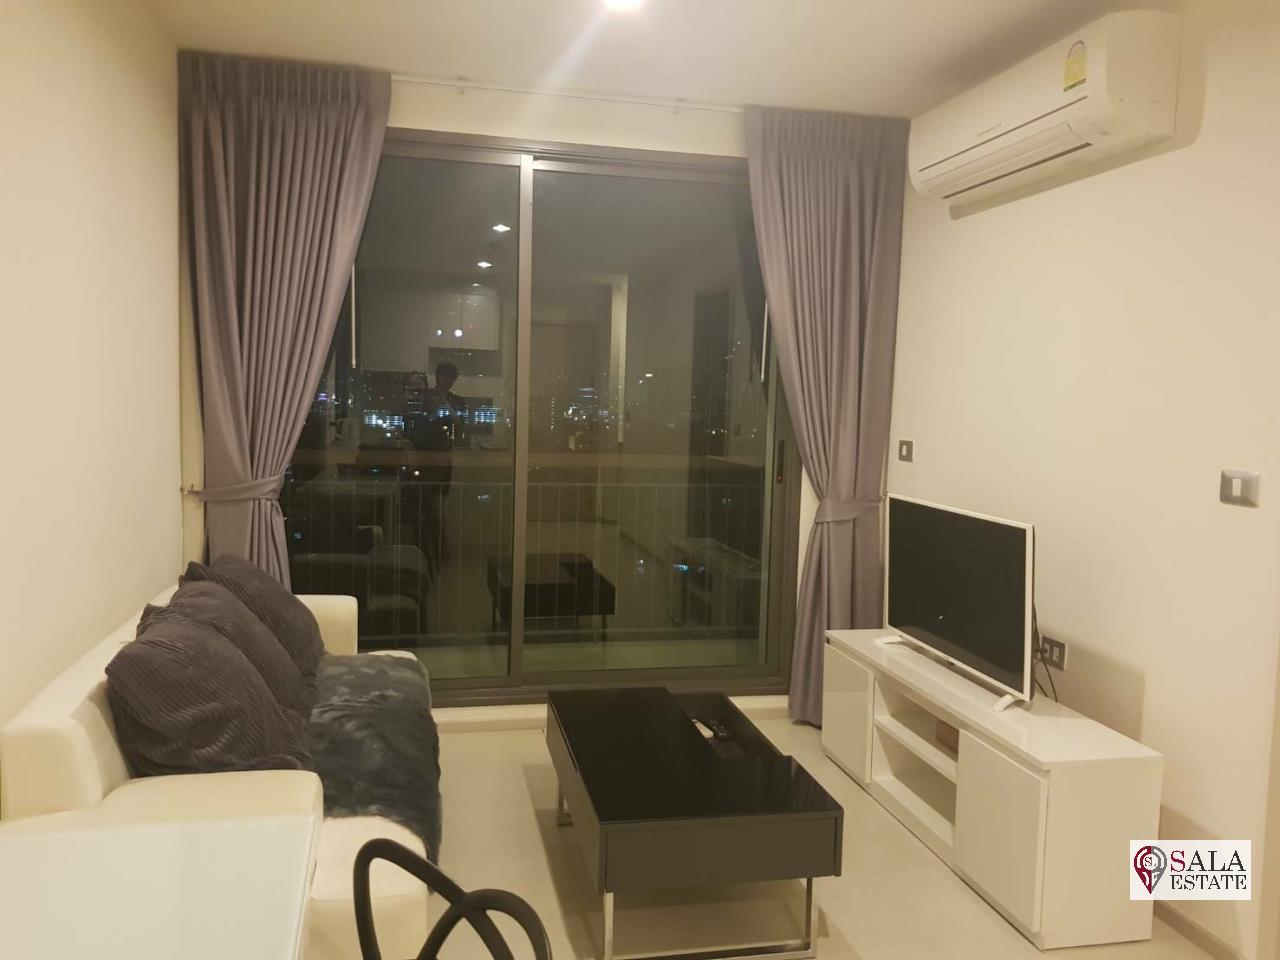 SALA ESTATE Agency's RHYTHM SUKHUMVIT 42 – BTS EKKAMAI,1BEDROOM 1BATHROOM, FULLY FURNISHED 1